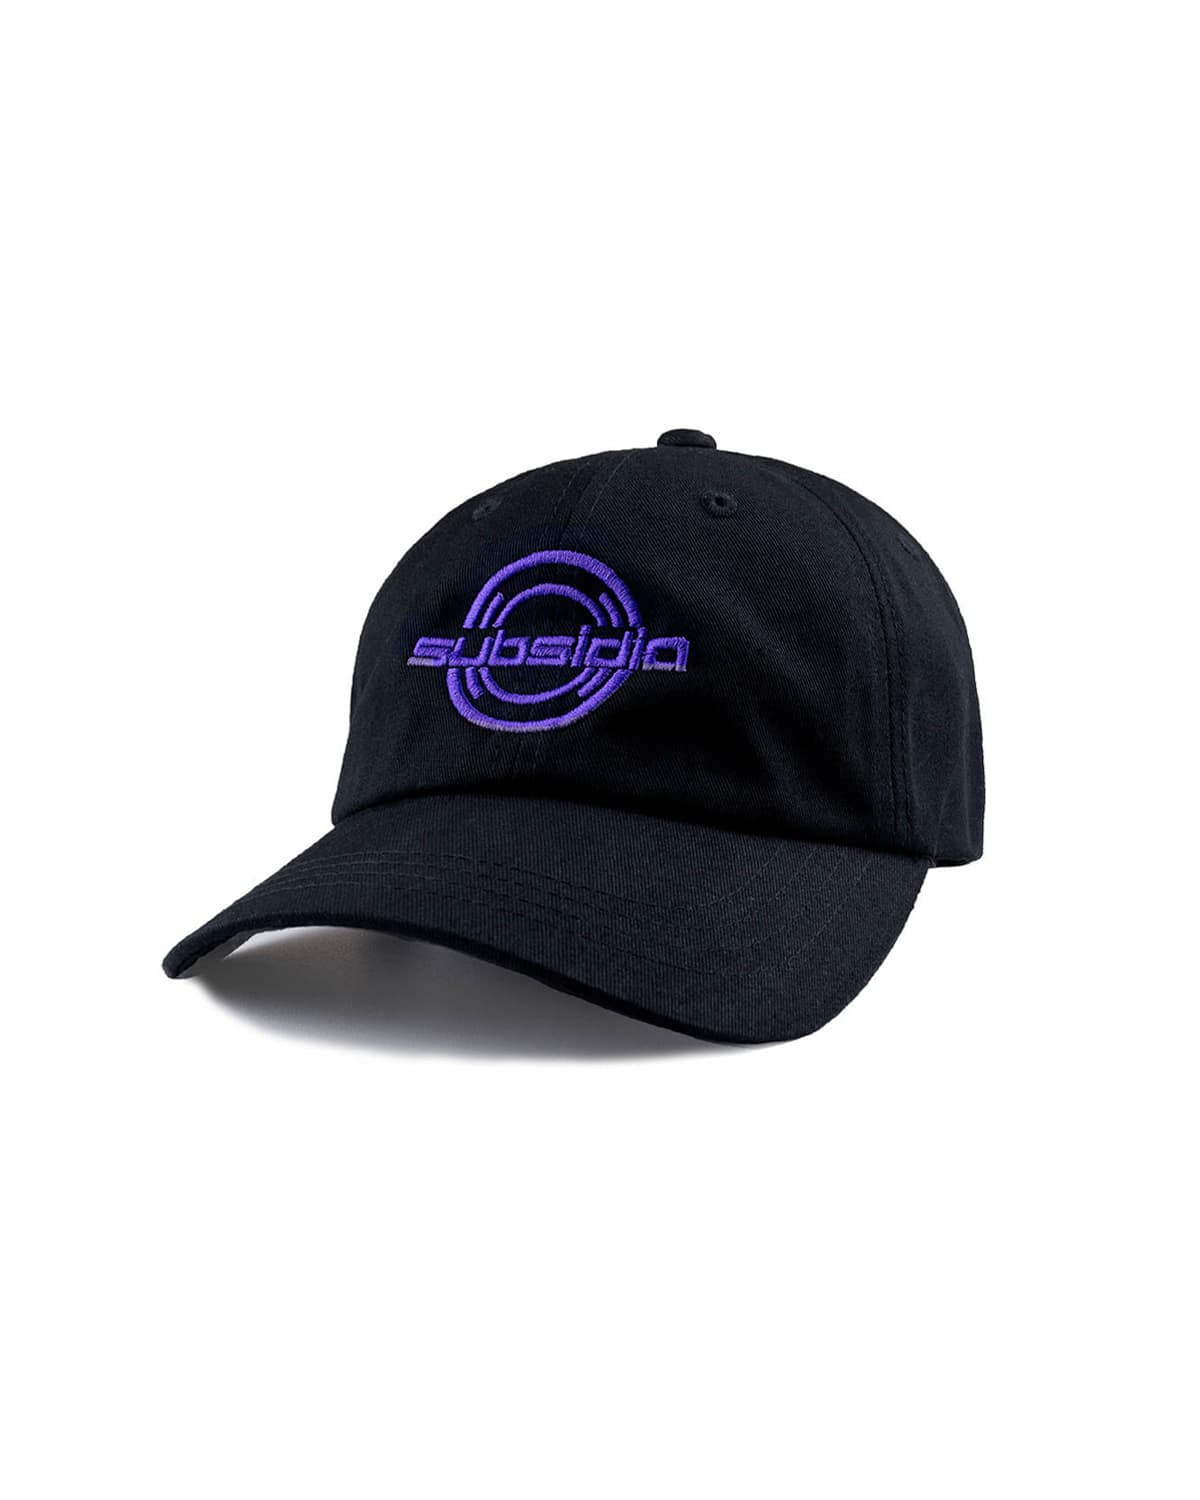 'Subsidia' Dad Hat - Black/Purple